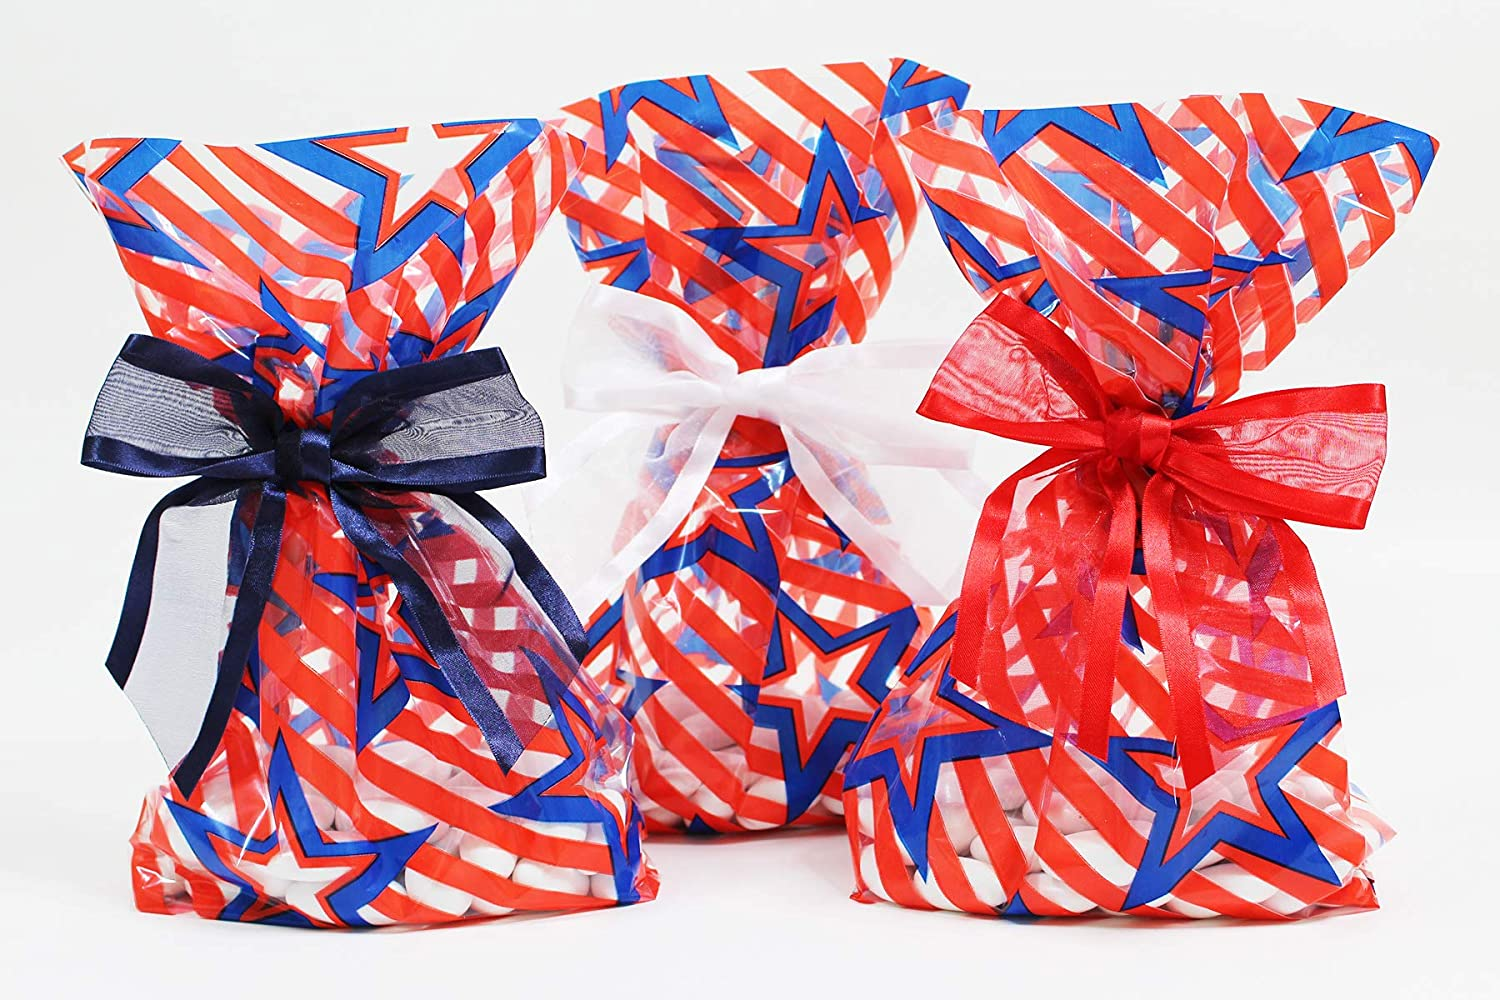 Party bags Self-adhesive bags Cello Bags Gift Bags Set of 20 bags Red bags Cookie bags Red Sprinkles Favors Bags